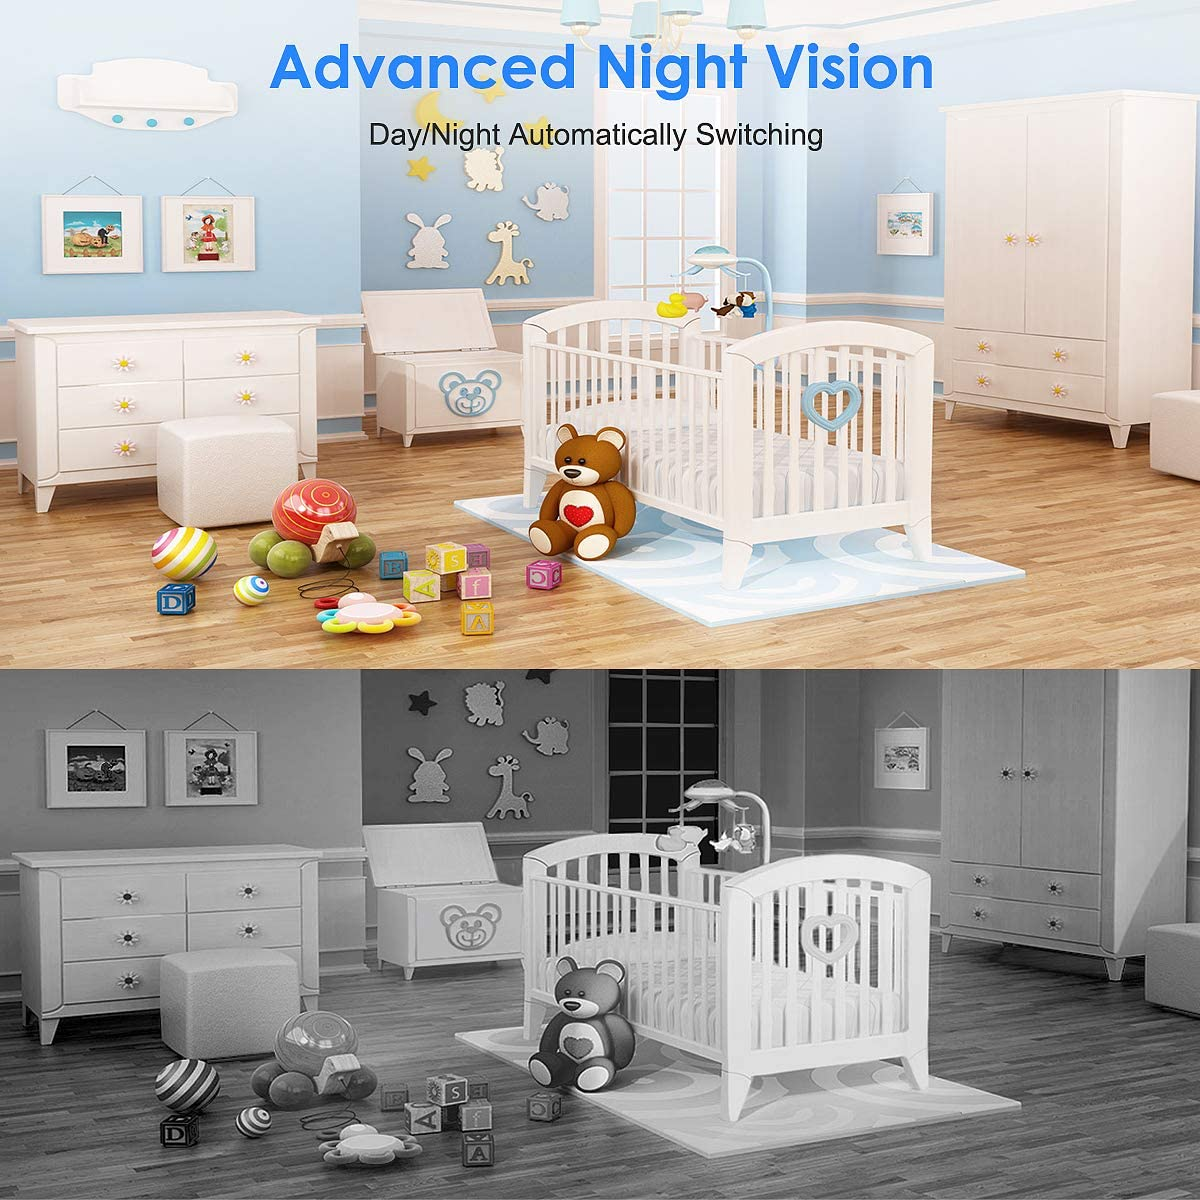 Baby Monitor Camera and Webcam 2 in 1, Camera Night Vision 1080p WiFi Camera for Home Security, iOS/Android